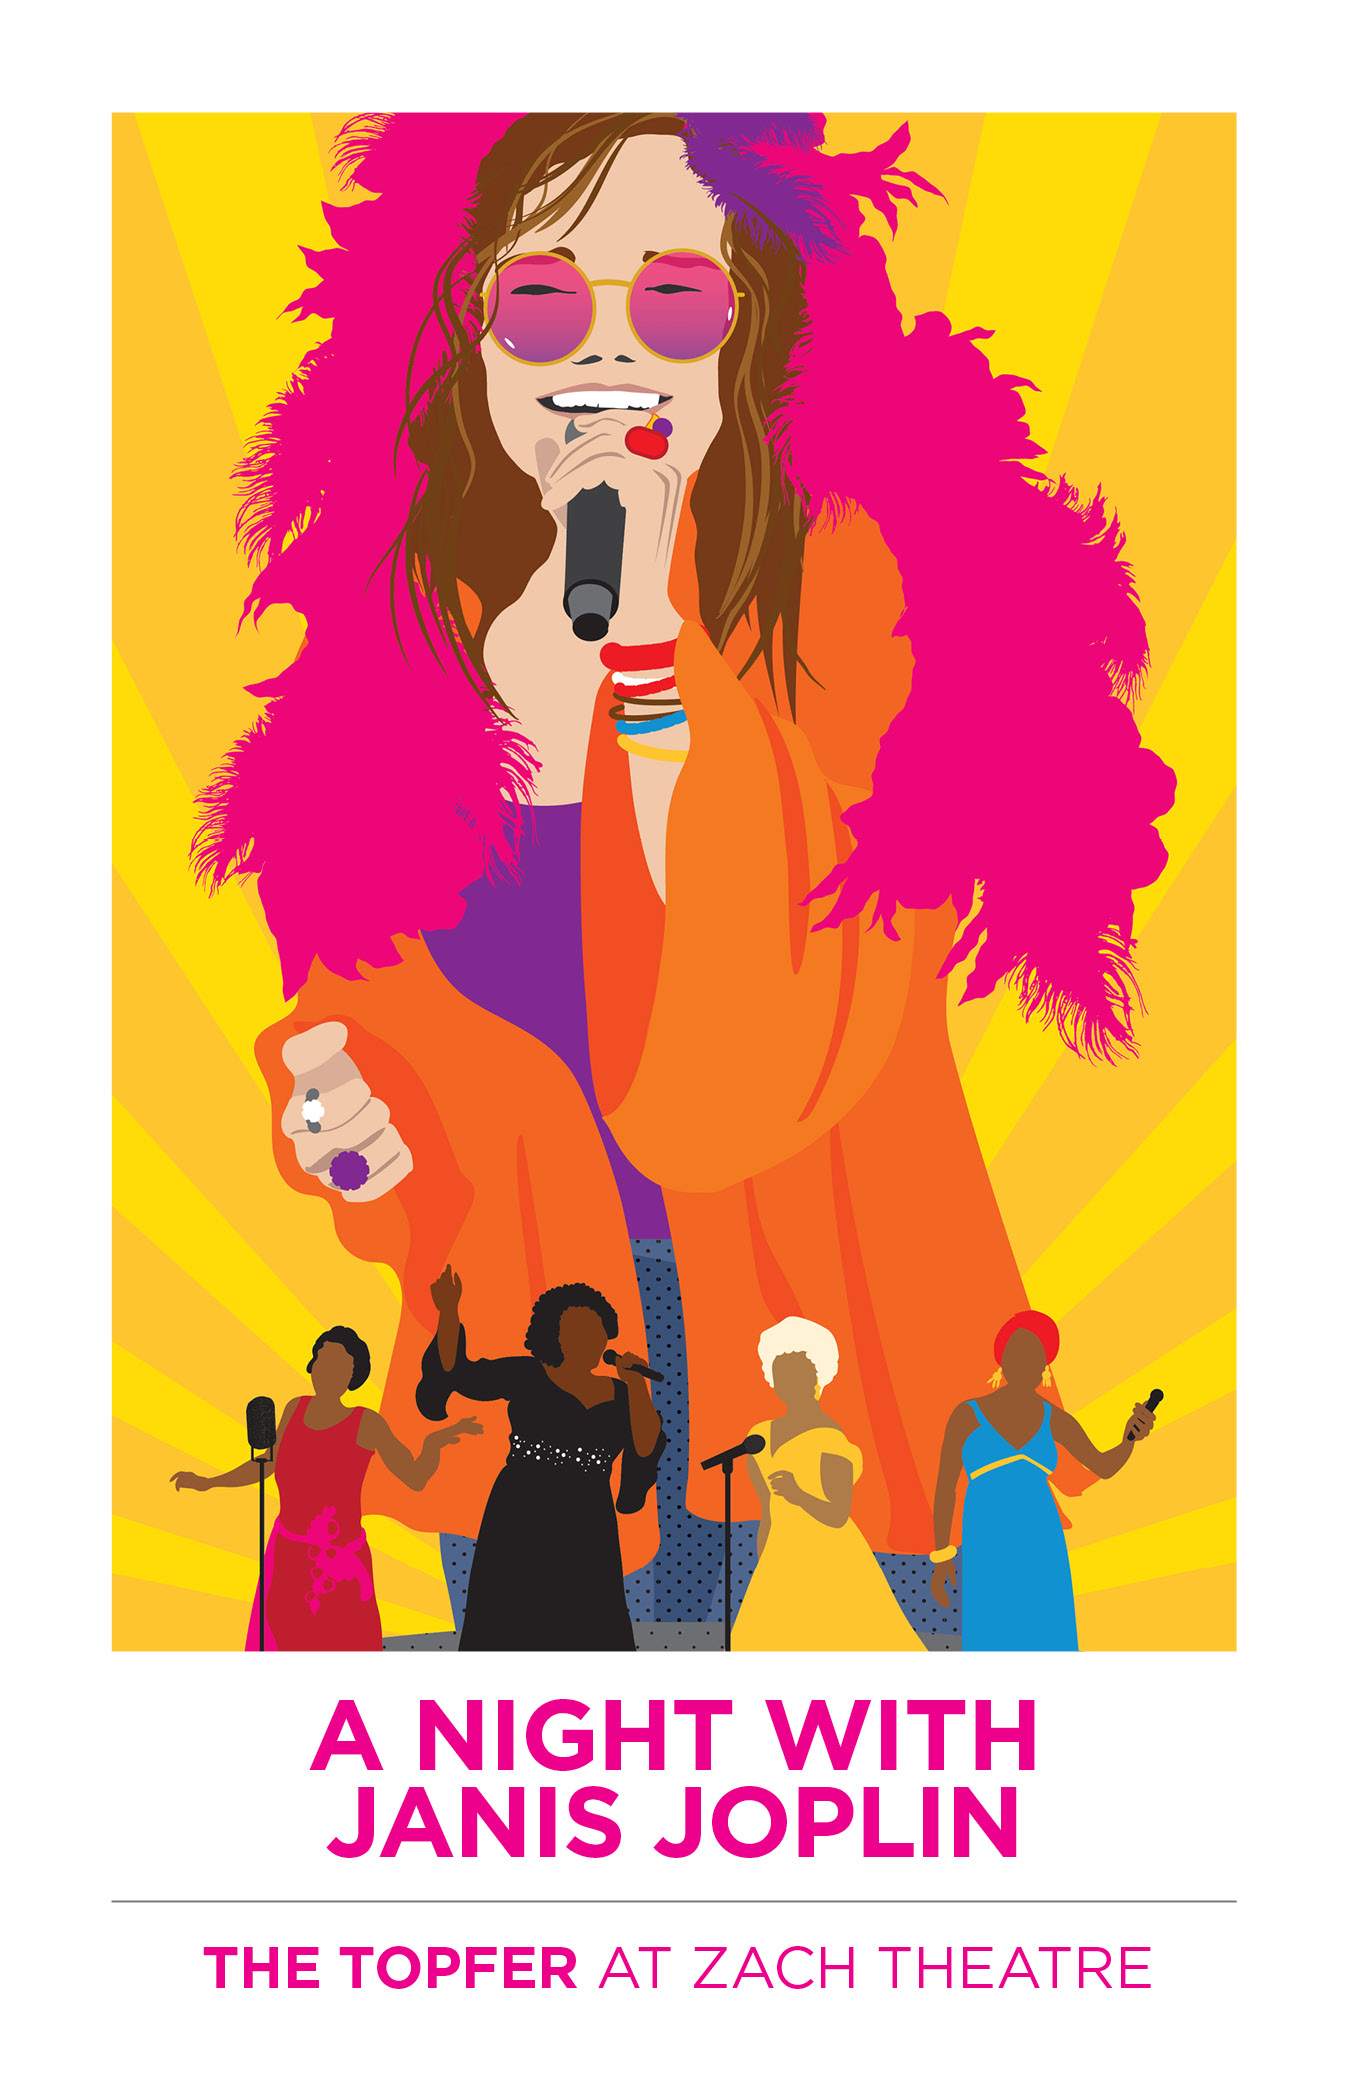 A Night with Janis Joplin by Zach Theatre